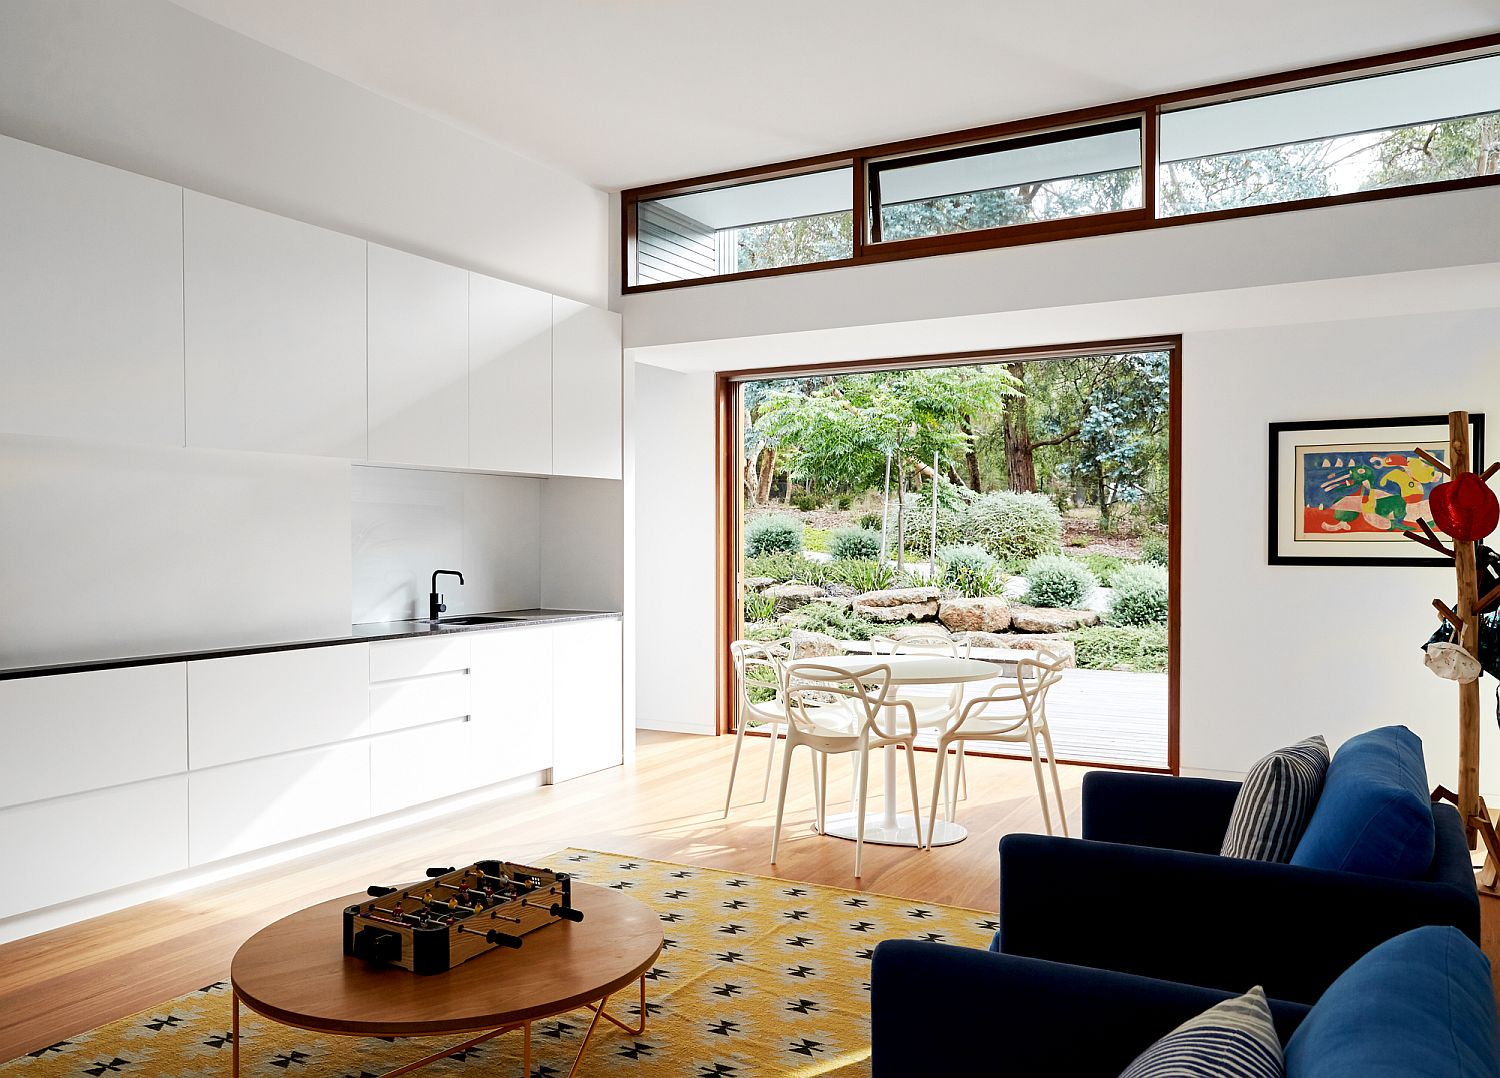 Connecting the living room with the landscape using the kitchen as interface